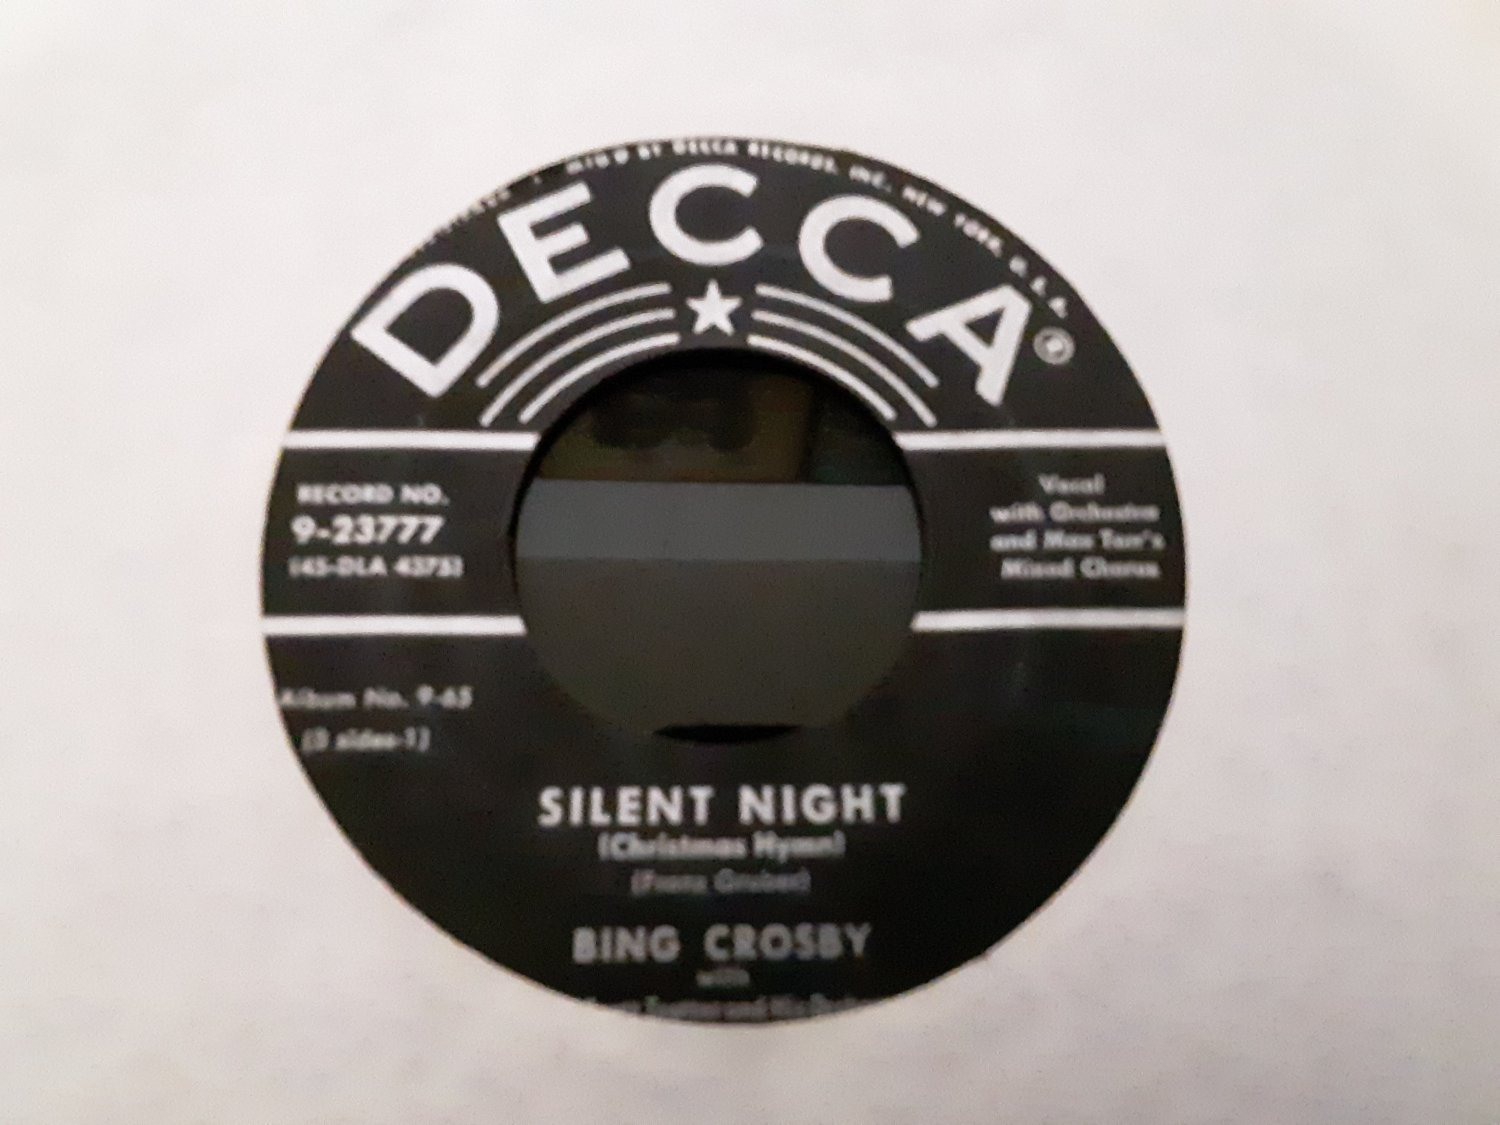 Bing Crosby - Silent Night / Adeste Fideles - 45rpm - Circa 1950